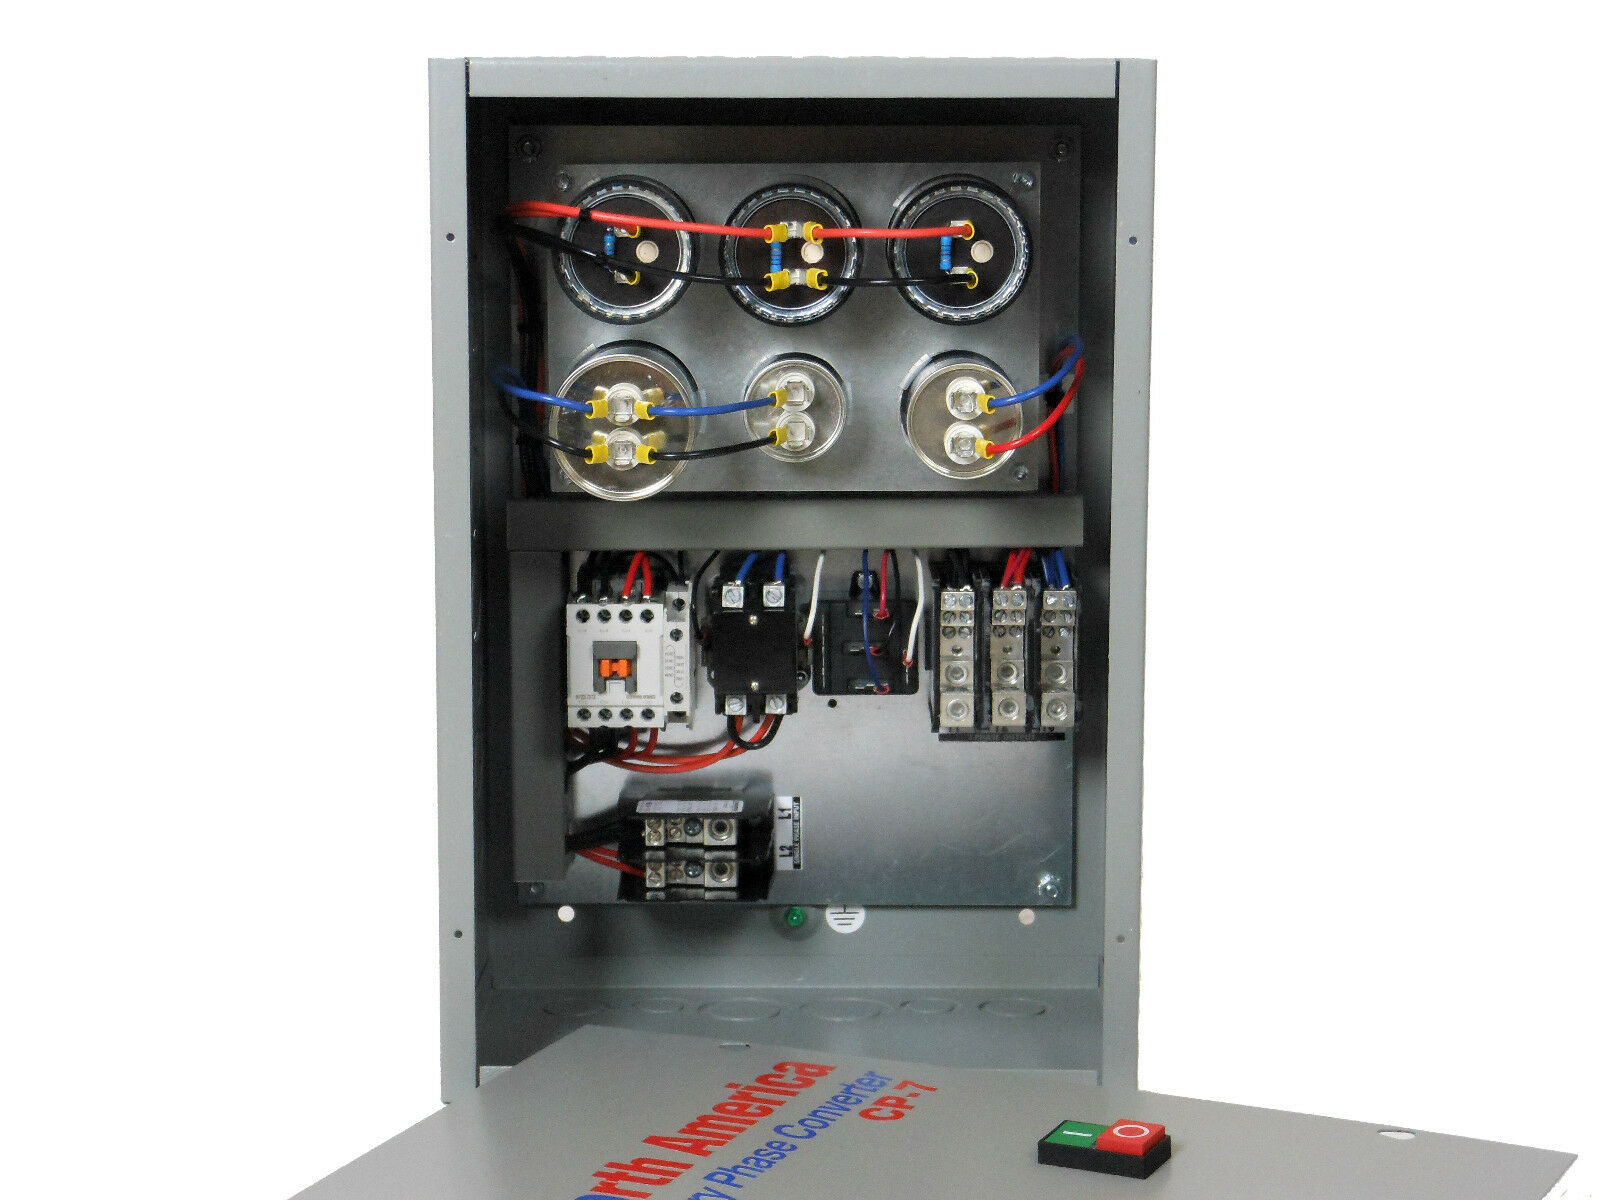 Cp-7 Pro-line 7 5hp Rotary Phase Converter Control Panel